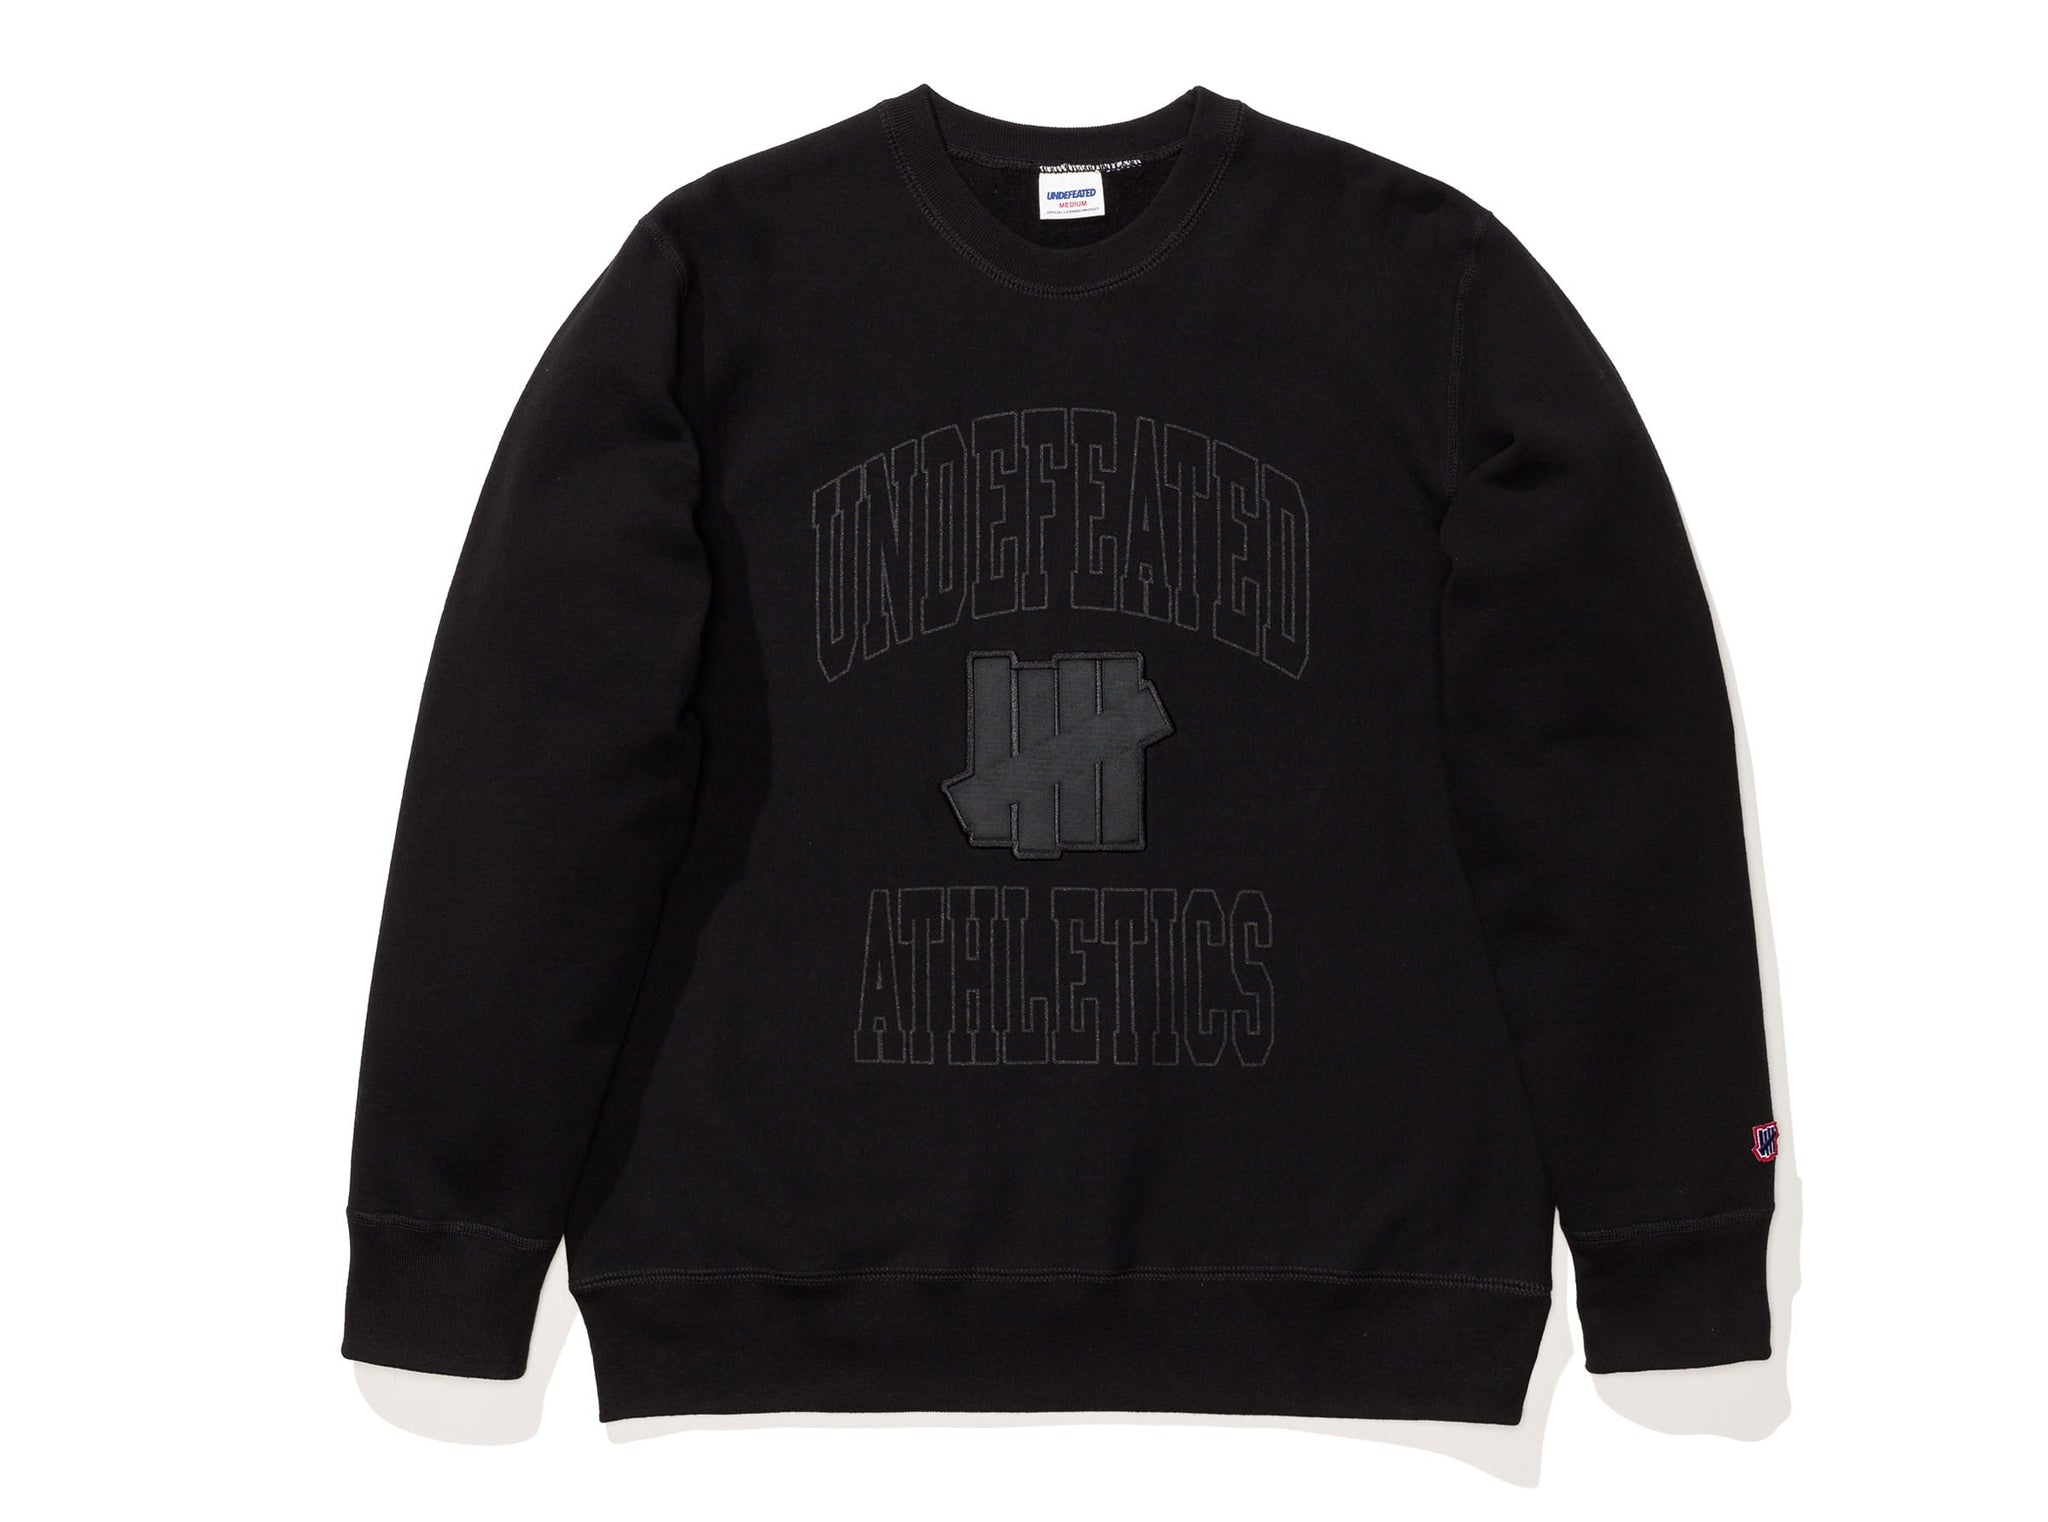 UNDEFEATED ATHLETICS CREWNECK